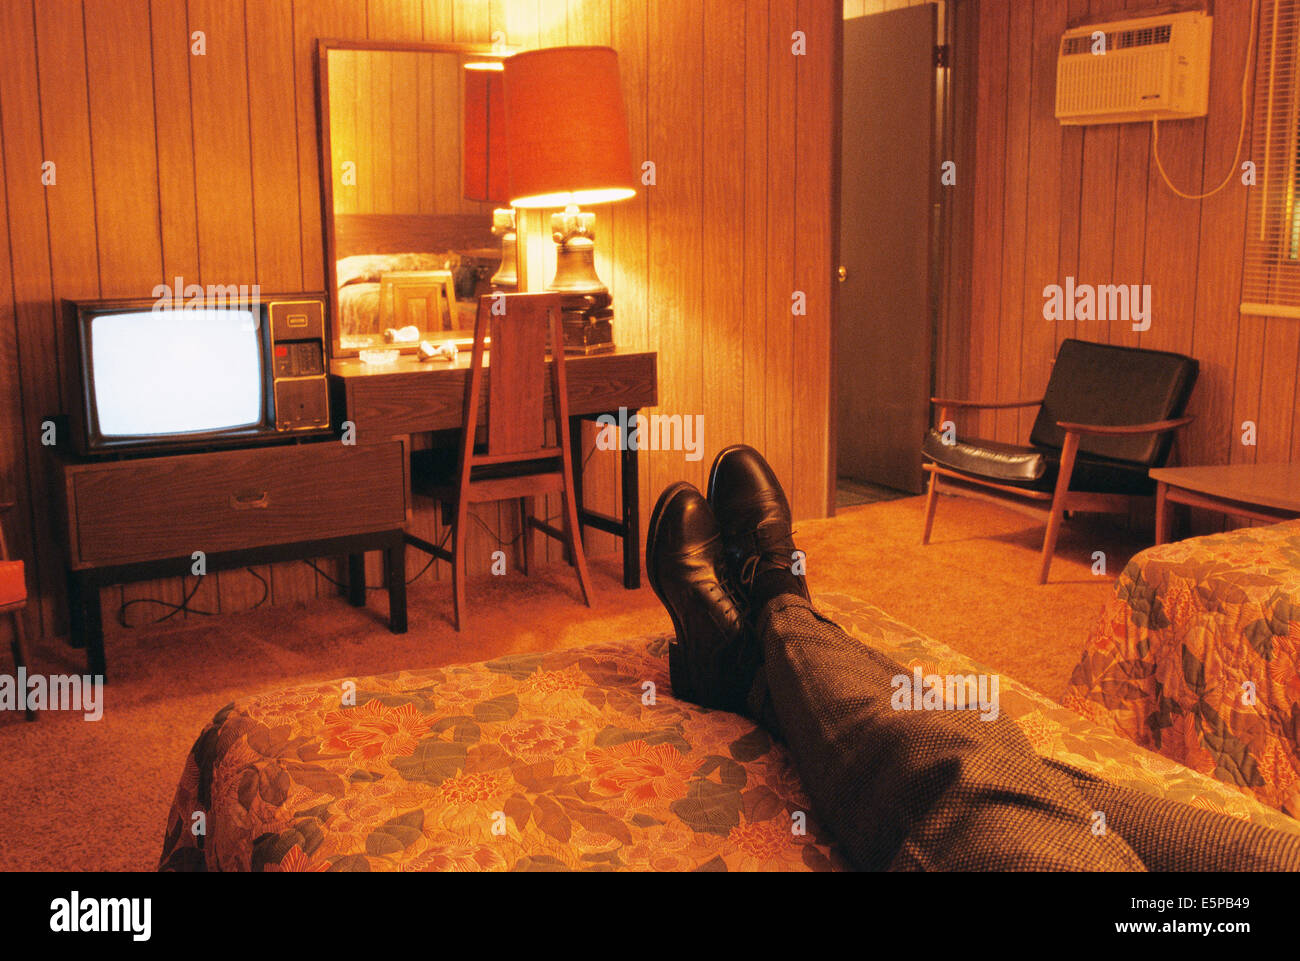 Person watching television in cheap motel - Stock Image